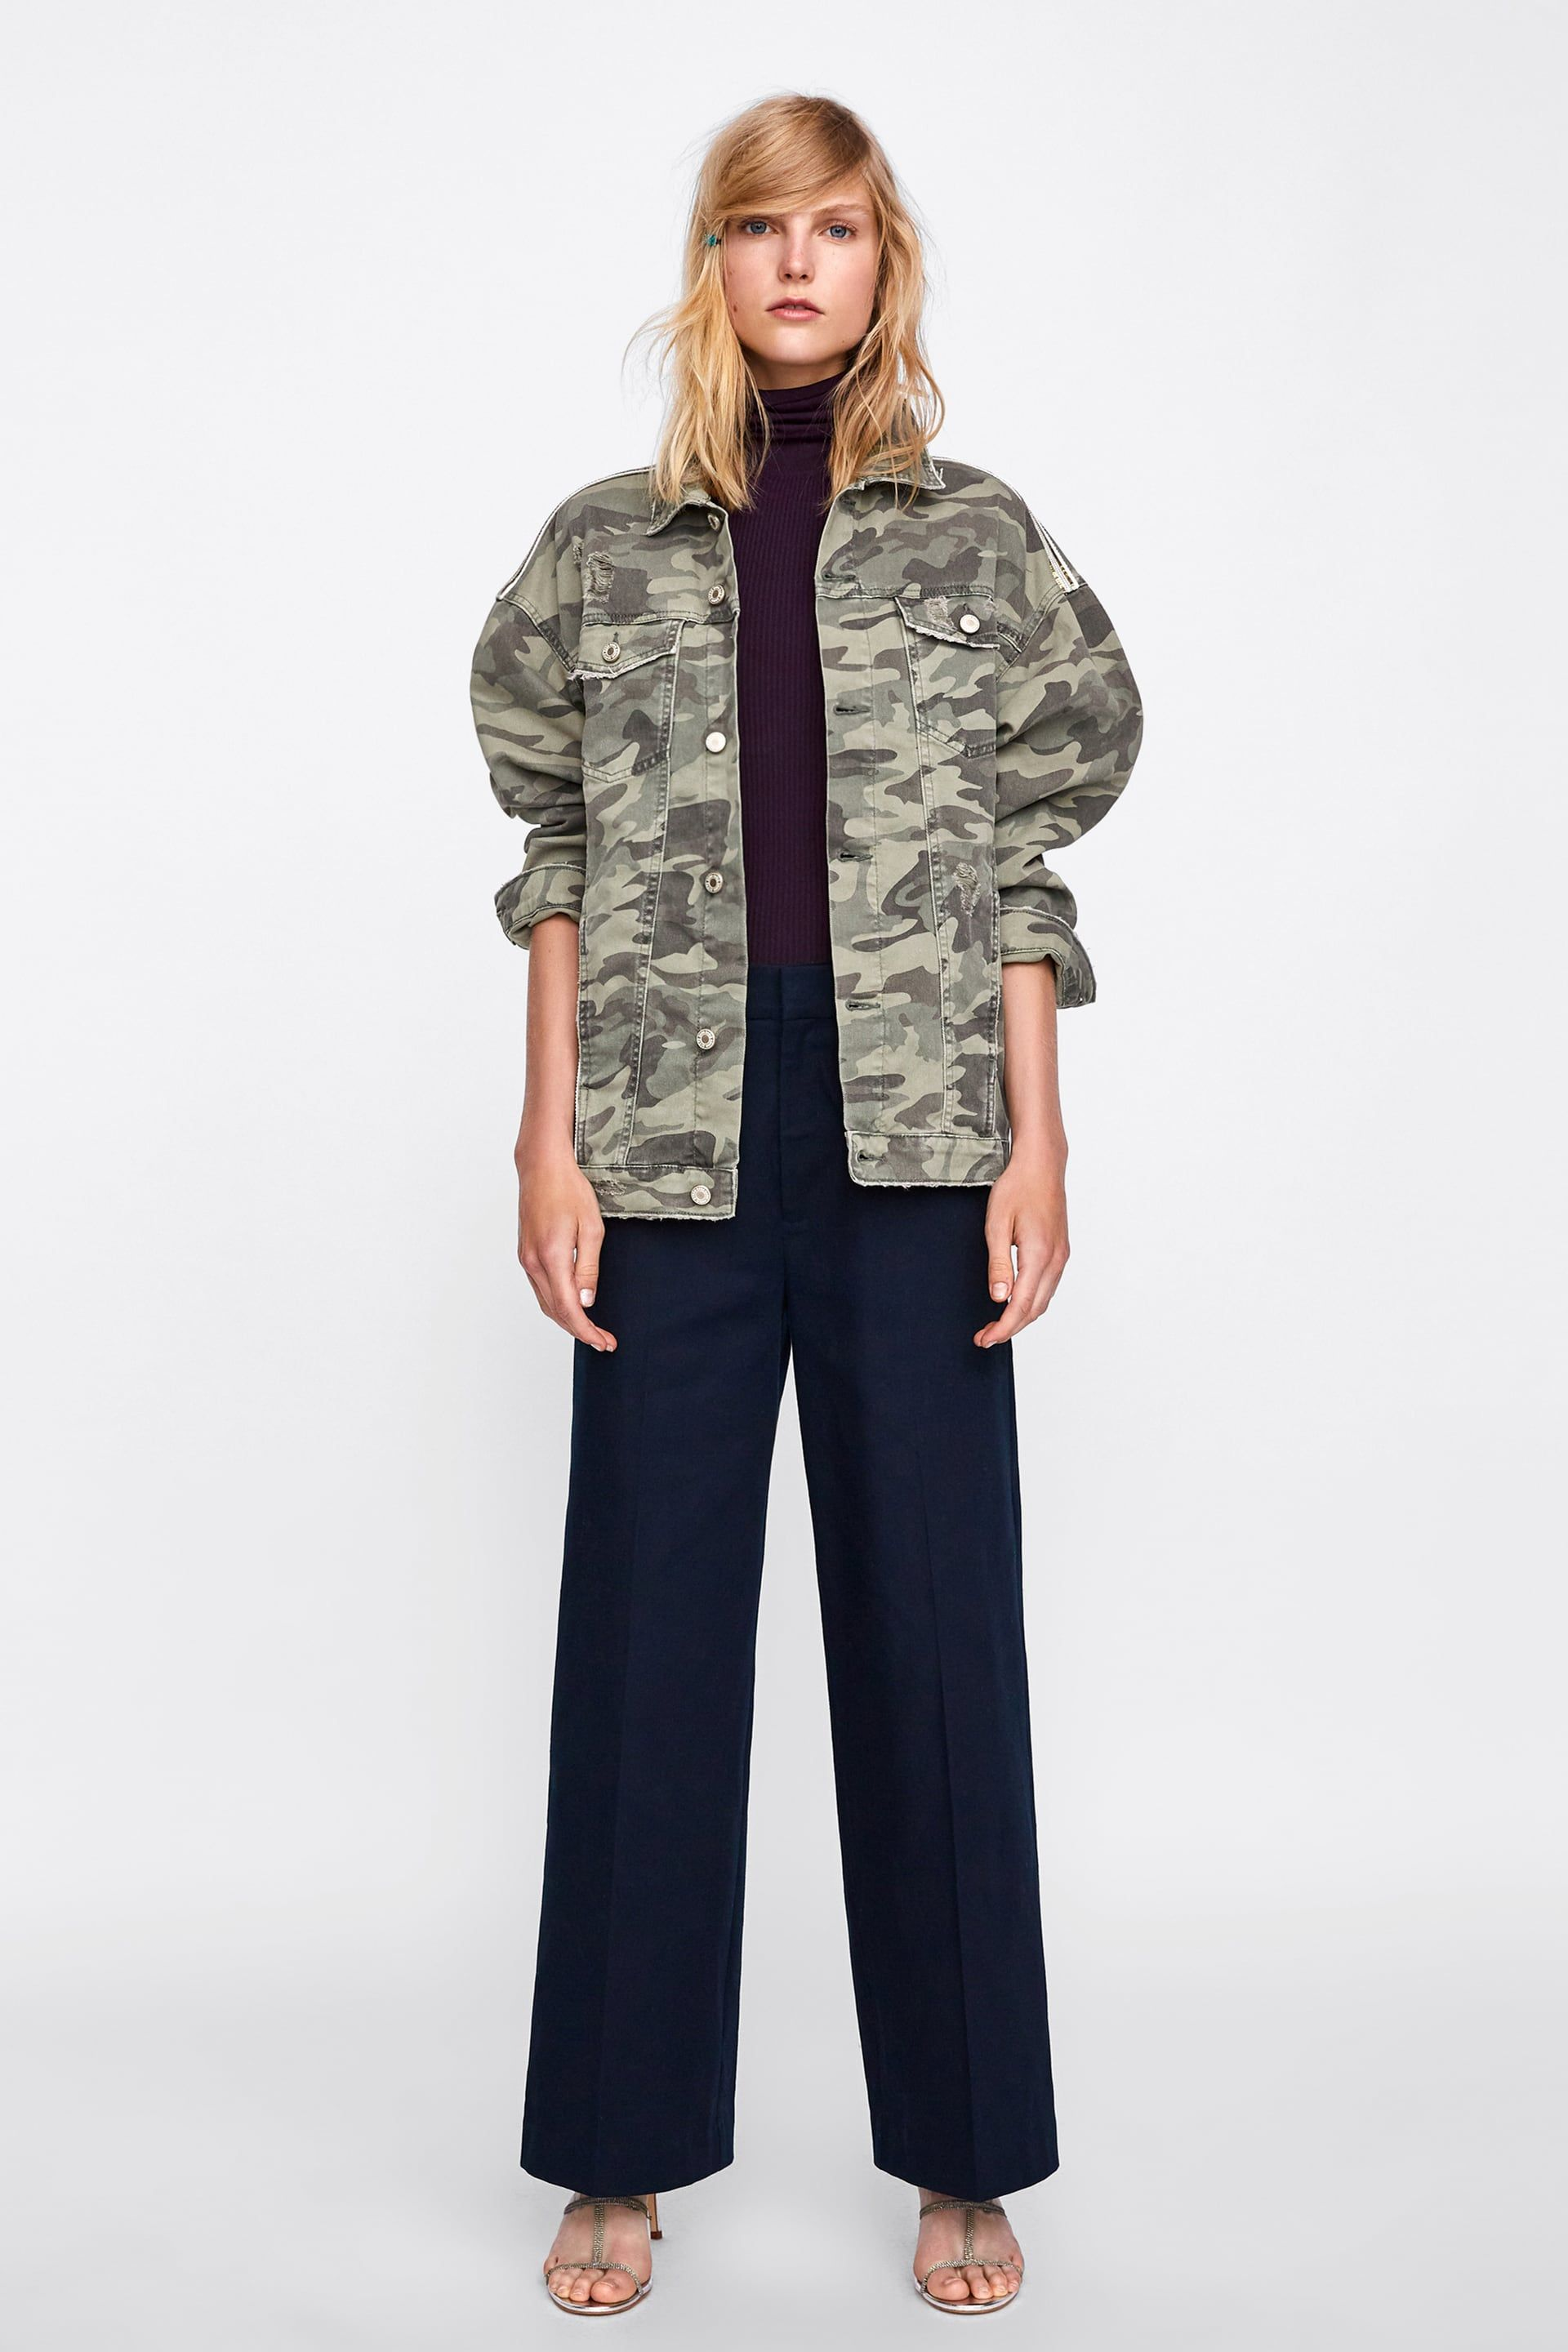 91d1016046d40 Image 1 of CAMOUFLAGE JACKET Z1975 from Zara | Wish List ...